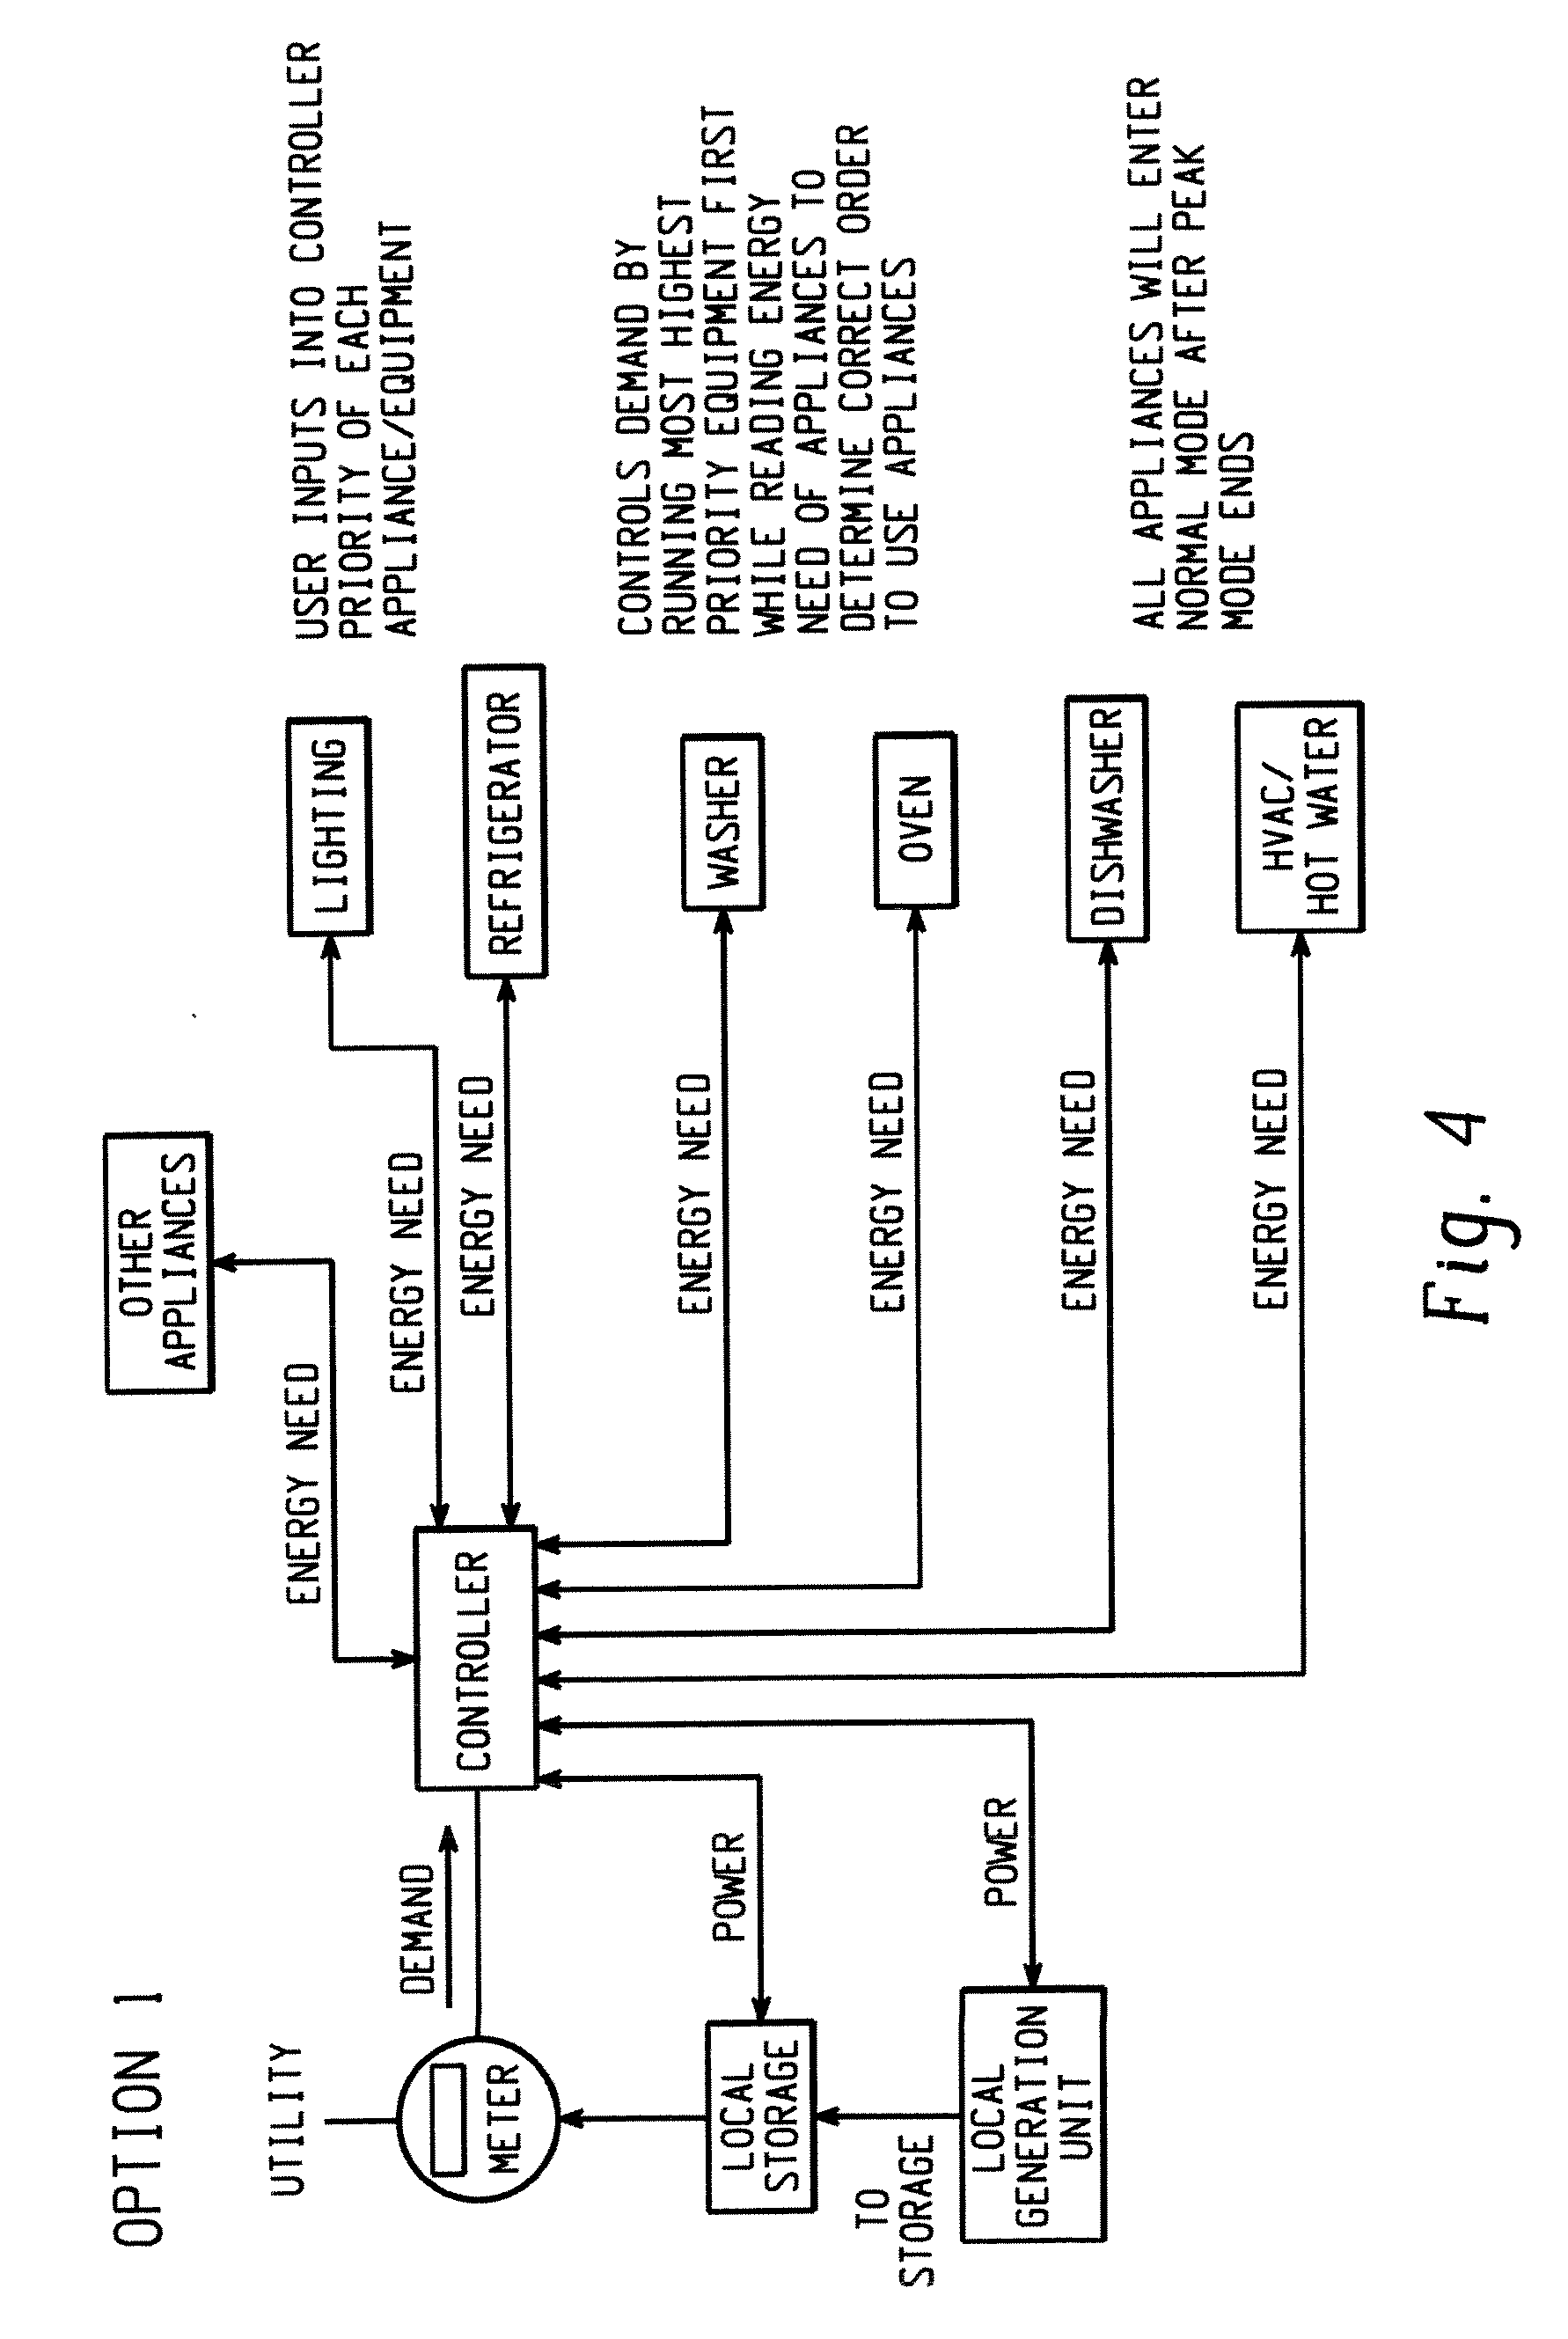 Patent Us20100146712 Energy Management Of Clothes Washer Appliance Hvac Drawing Reading